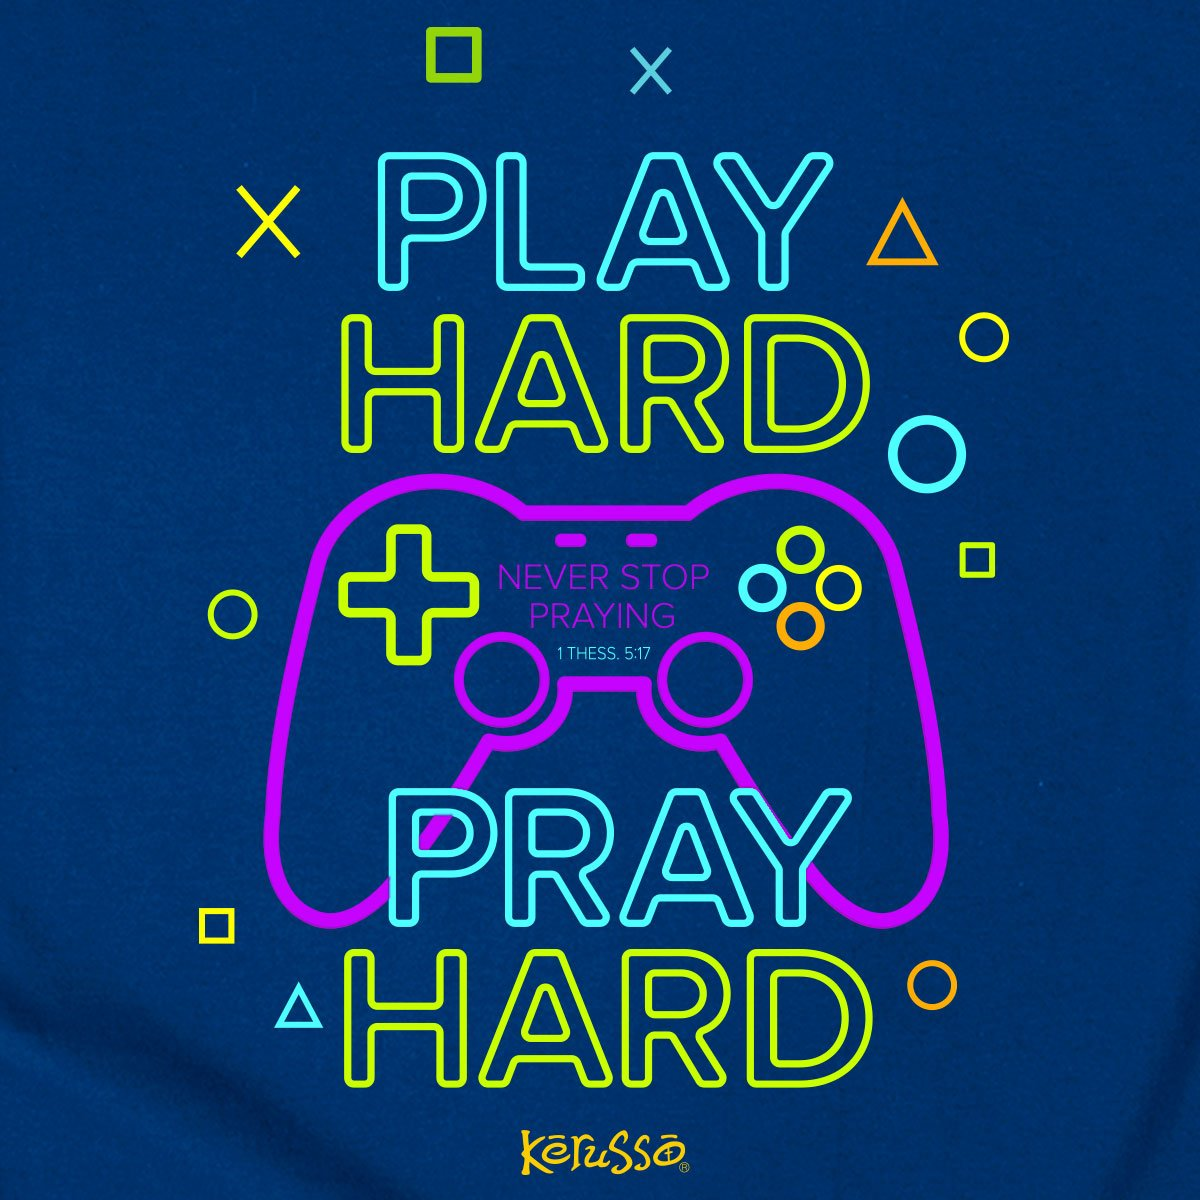 Kerusso Kidz Christian T-Shirt Gamer 1 thessalonians 5:17